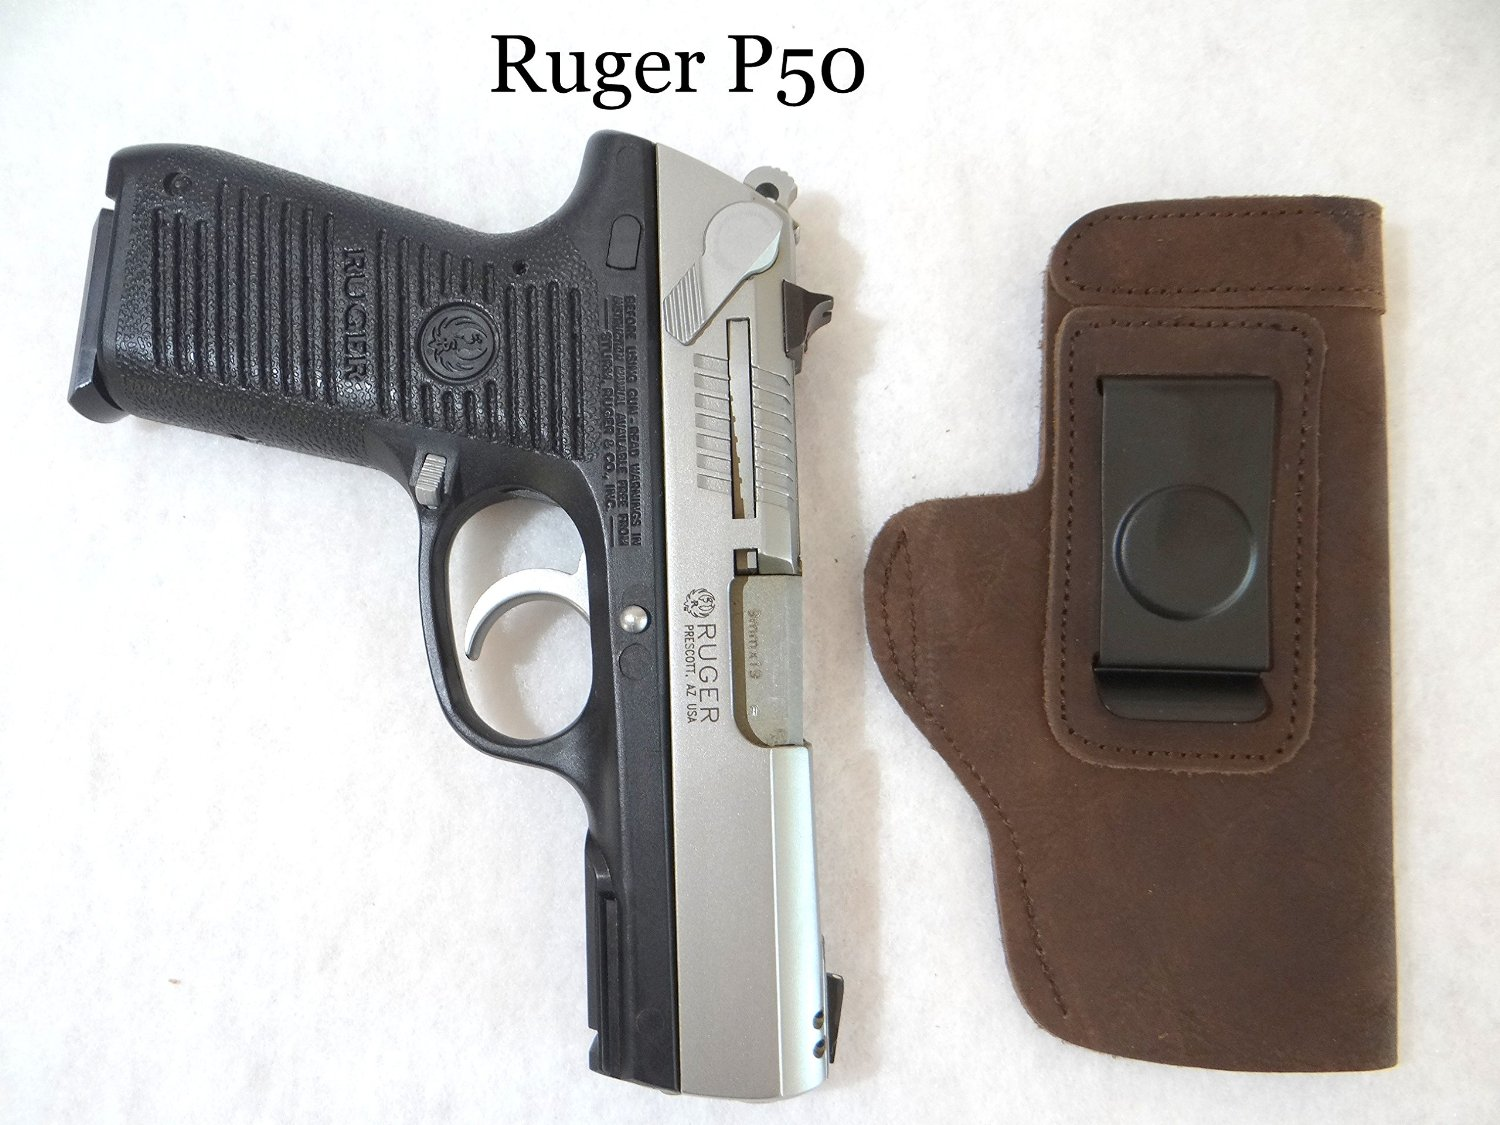 Glock, Springfield XD, Ruger, Beretta, S&W, Taurus CCW IWB rugged ULTRA-SOFT SUEDE LEATHER Gun Holster-Brown - RIGHT HANDED